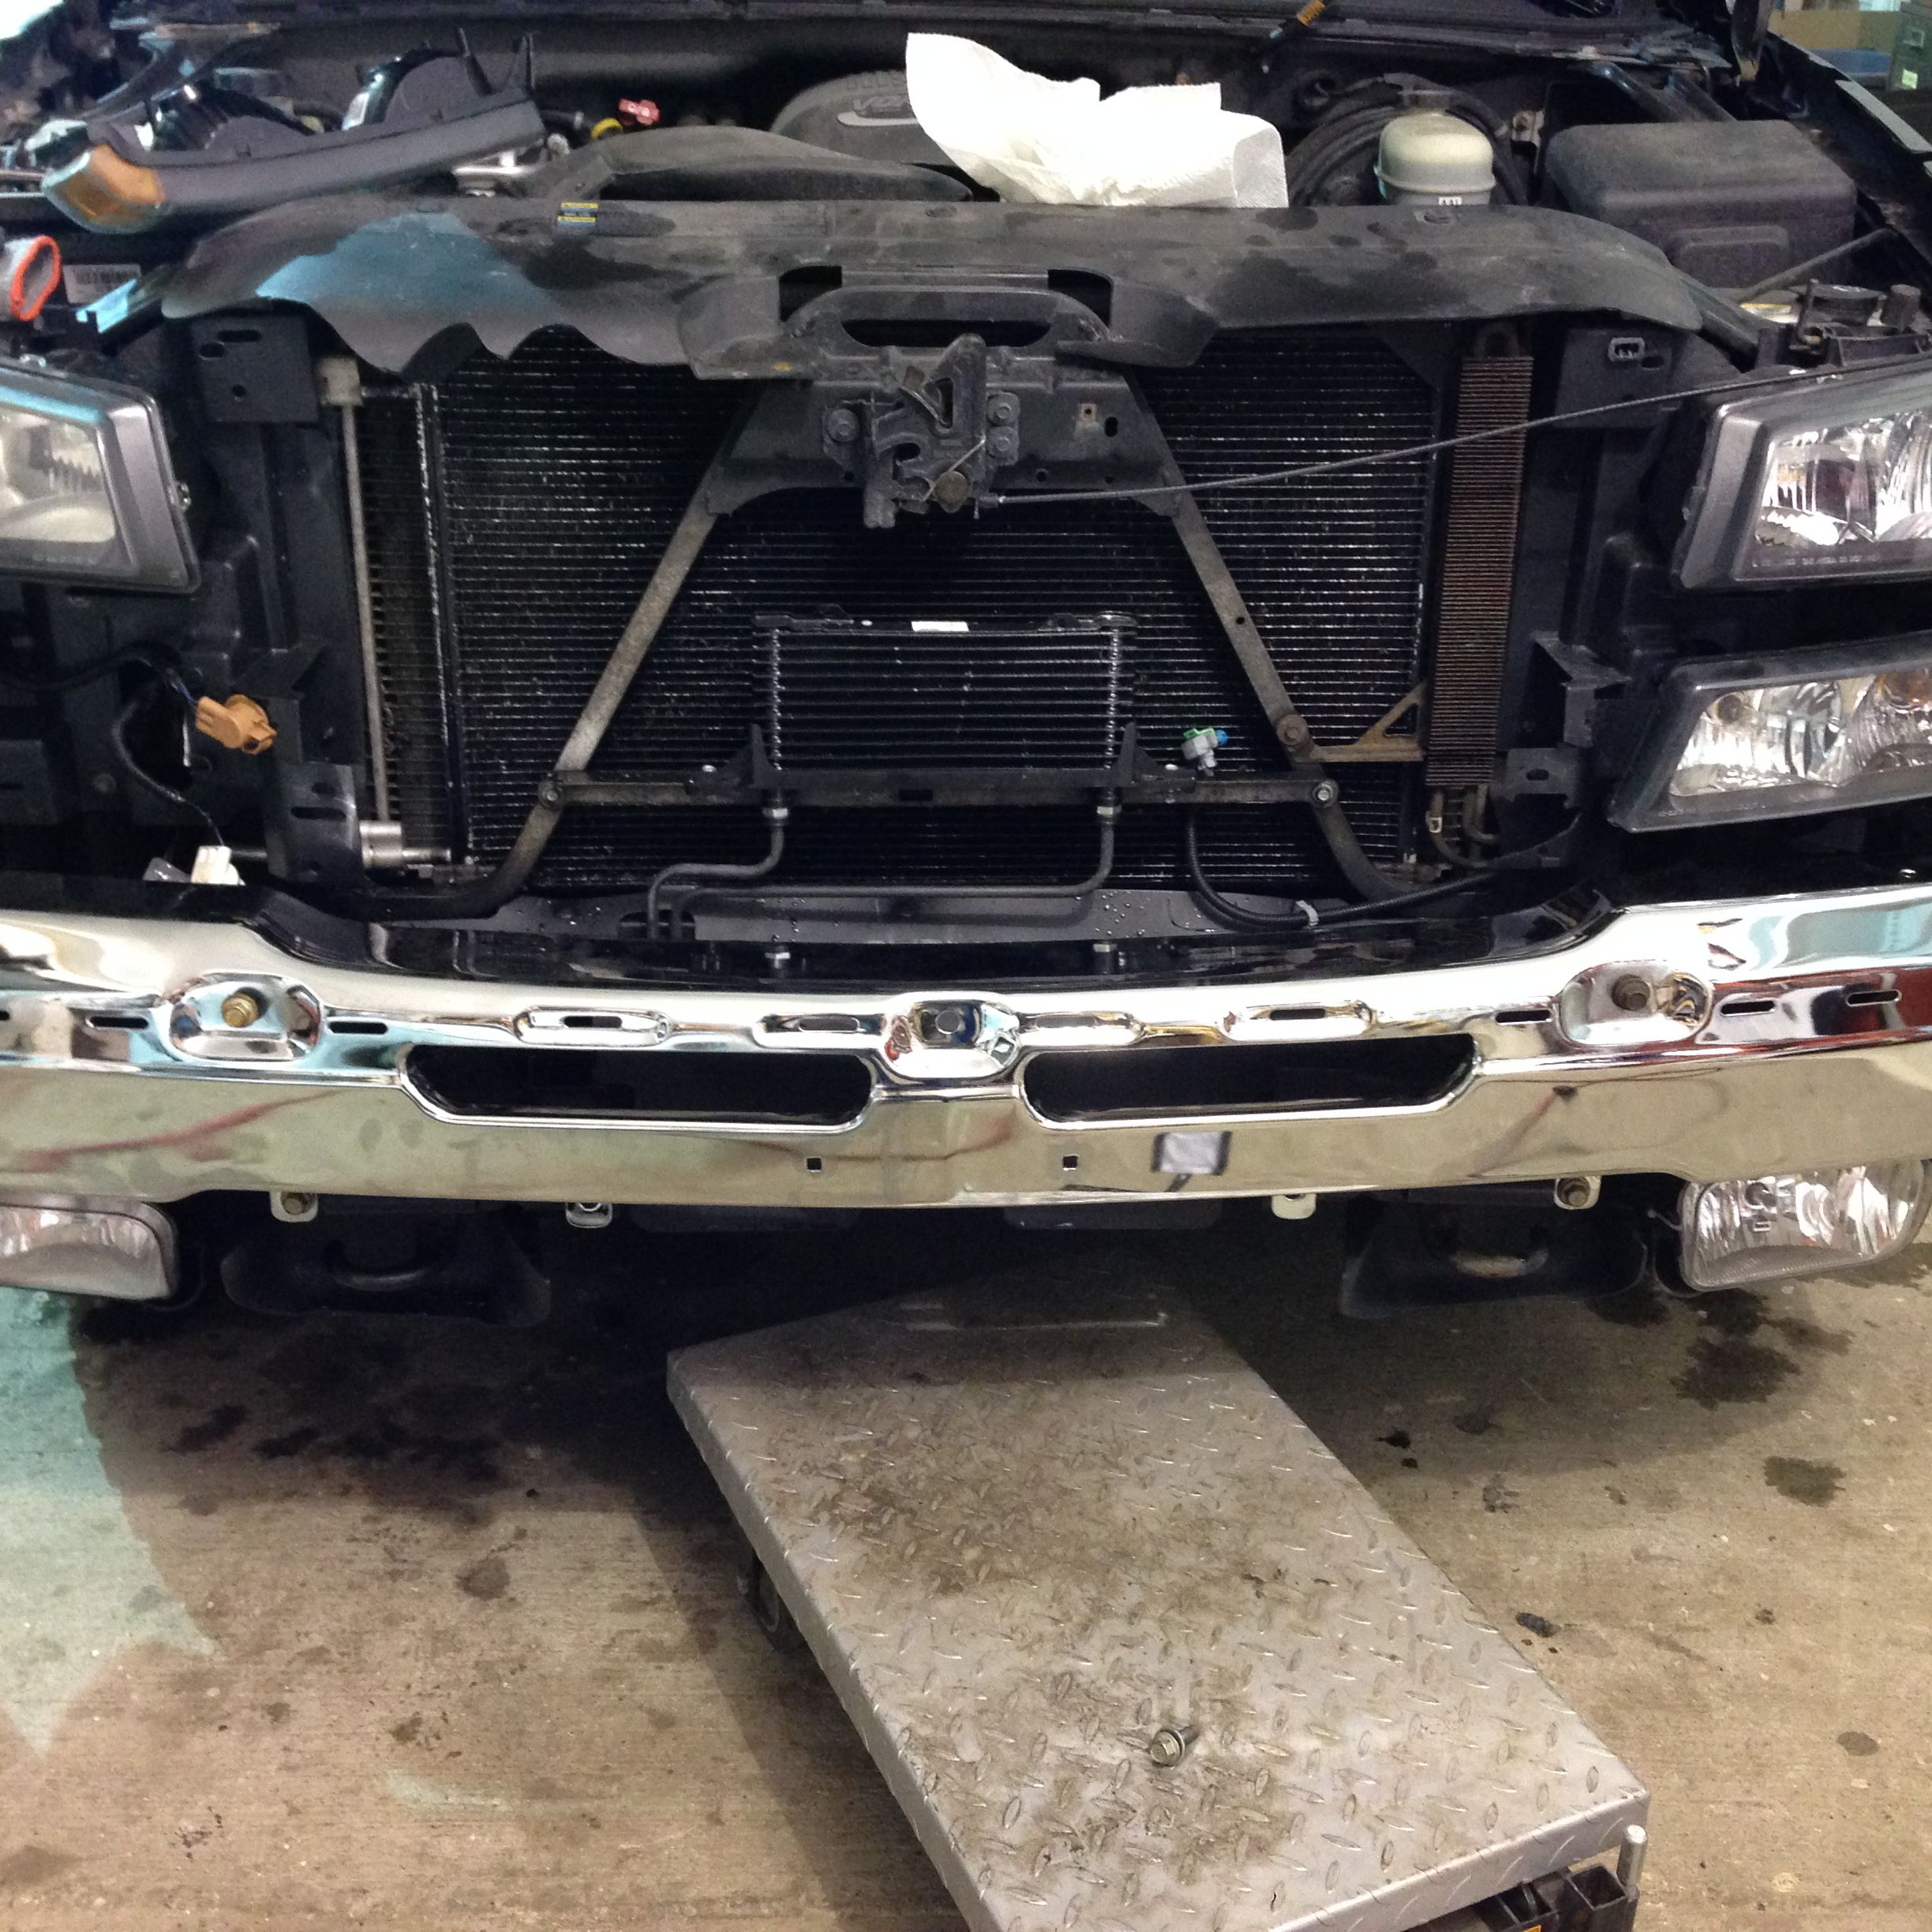 Should You Repair Your Own Wrecked Car?